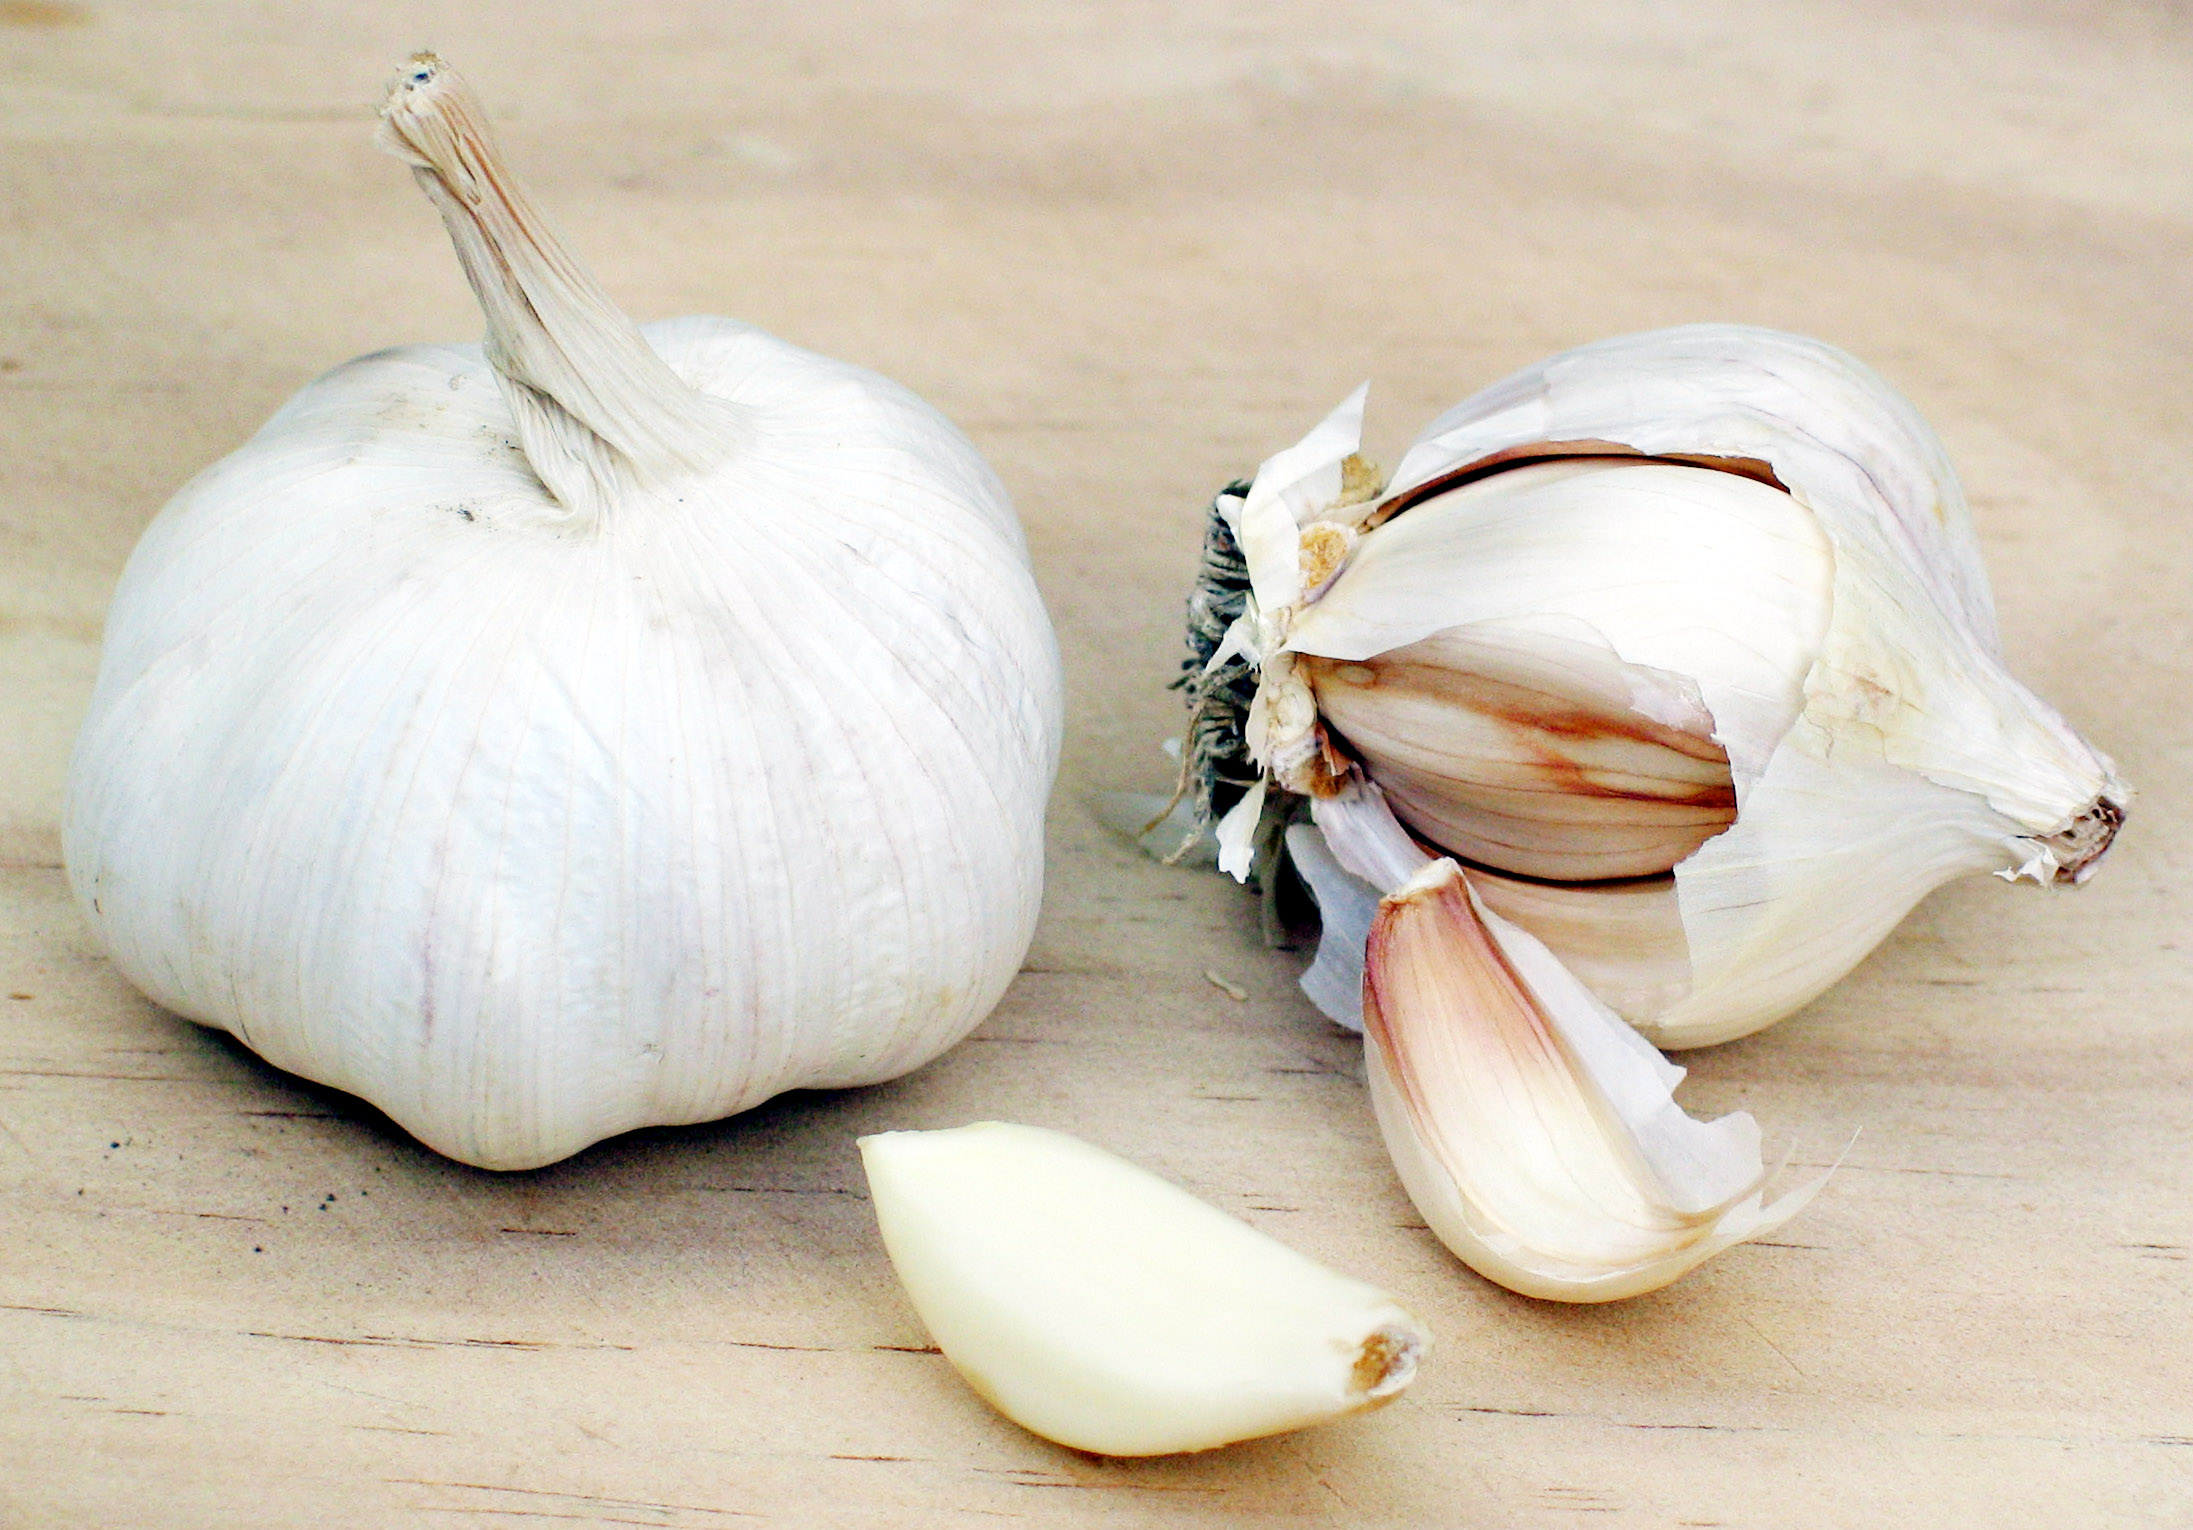 Garlic - 01 photo